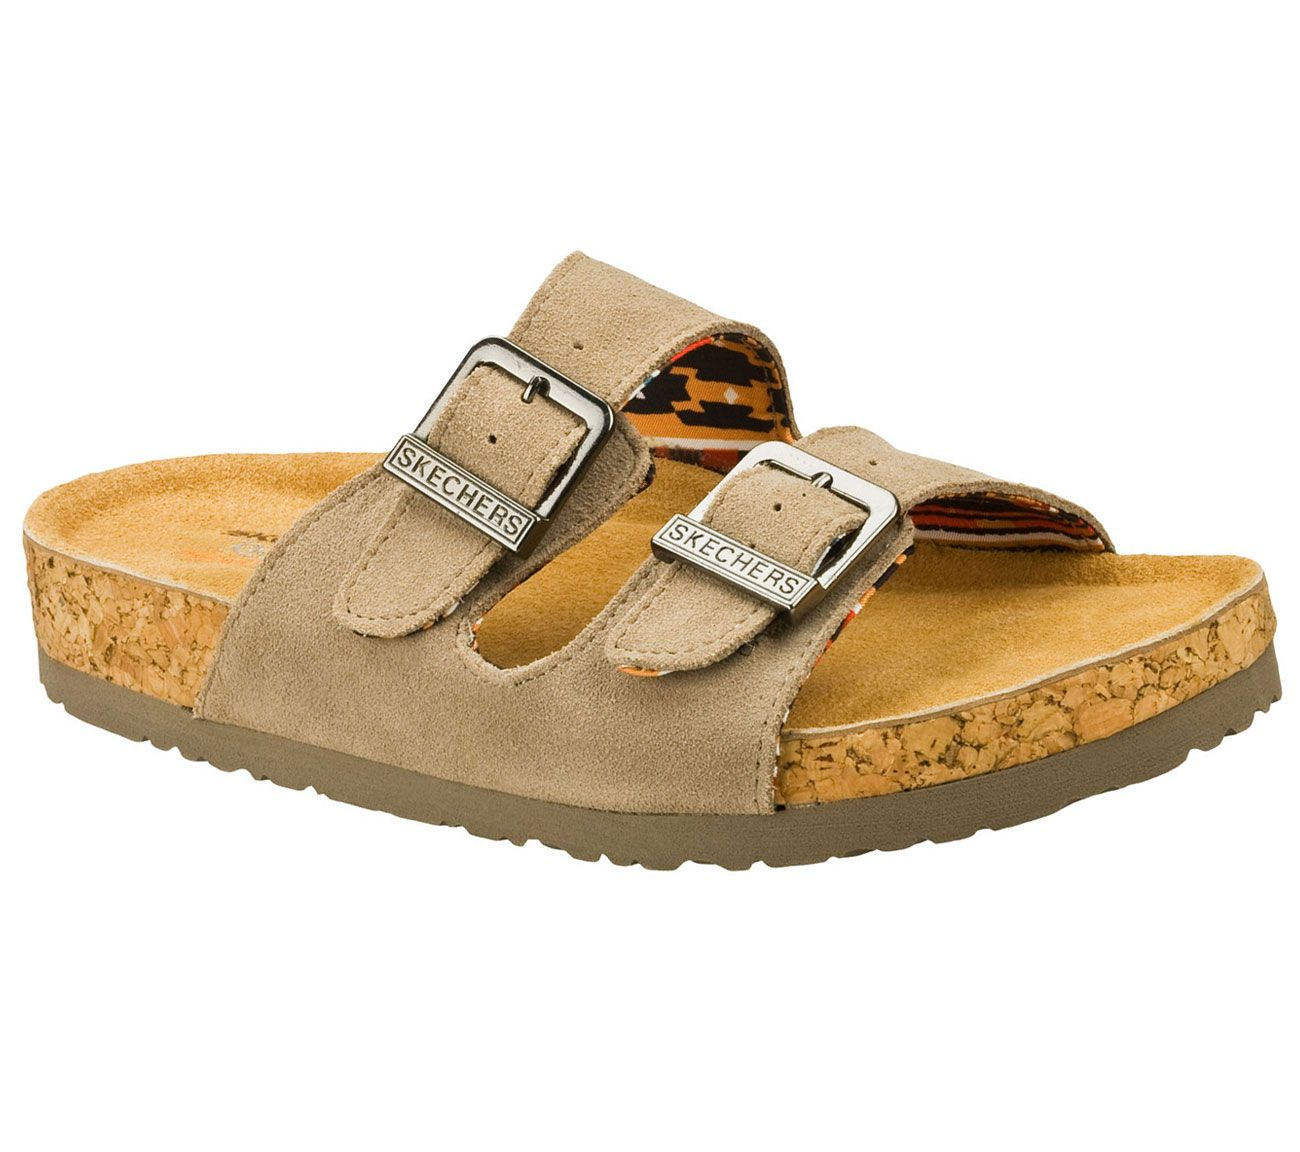 d72bea52fa69 Delicious classic style and amazing comfort combine in the SKECHERS Relaxed  Fit®  Granola - Trail Mix sandal. Soft suede upper in a two strap casual  comfort ...